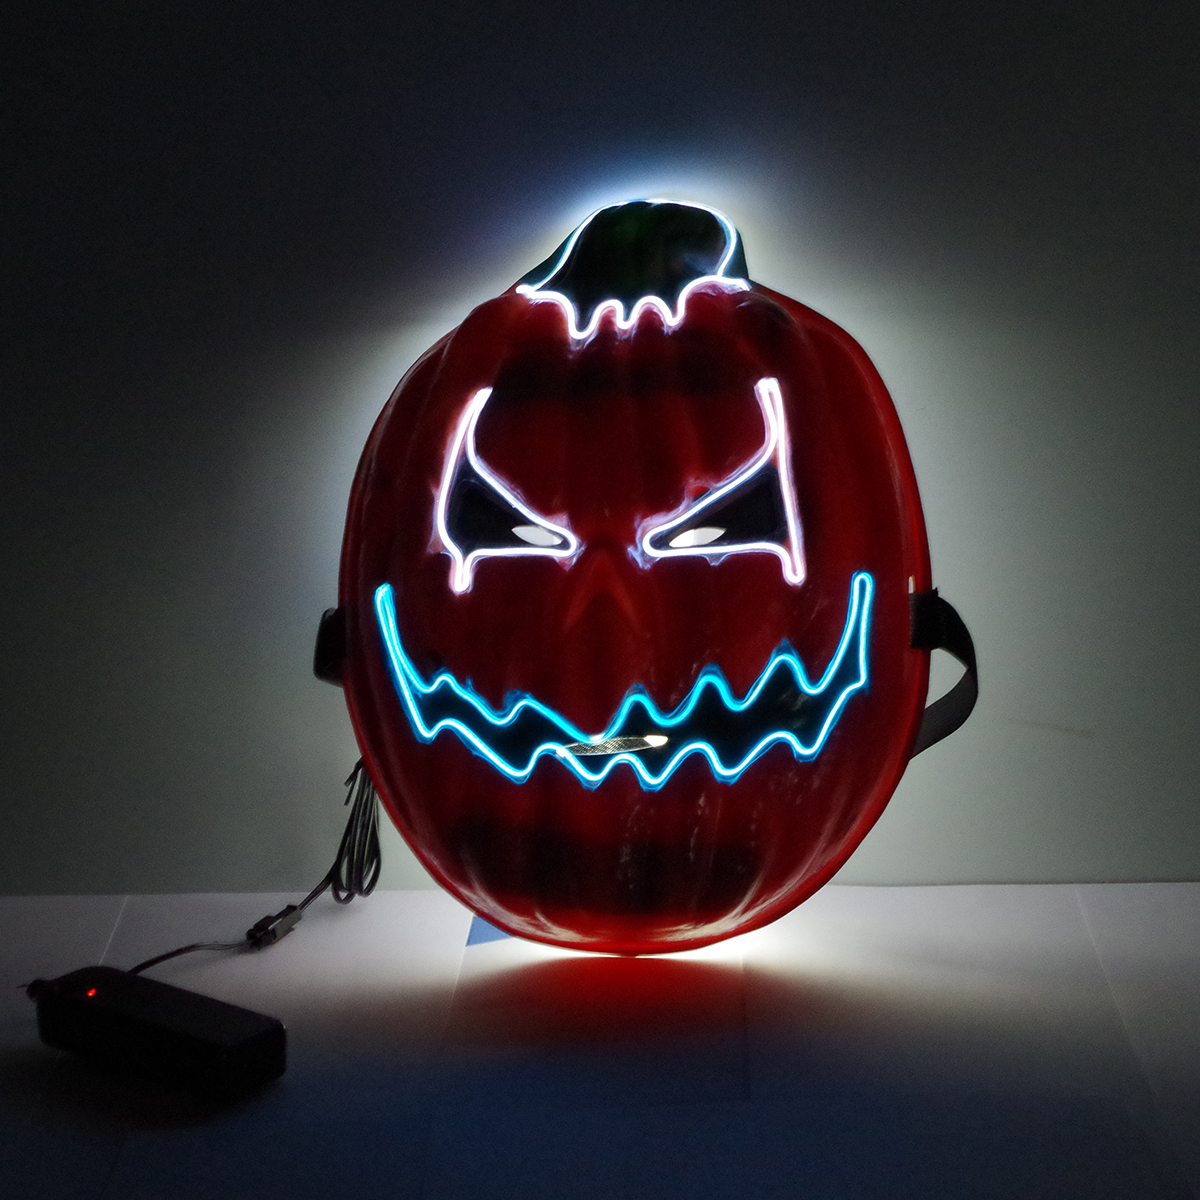 Halloween Mask LED Mask Light Up Party Masks Neon Mask Cosplay Mascara Horror Glow Glow-in-Dark Dark Scary Pumpkin Mask